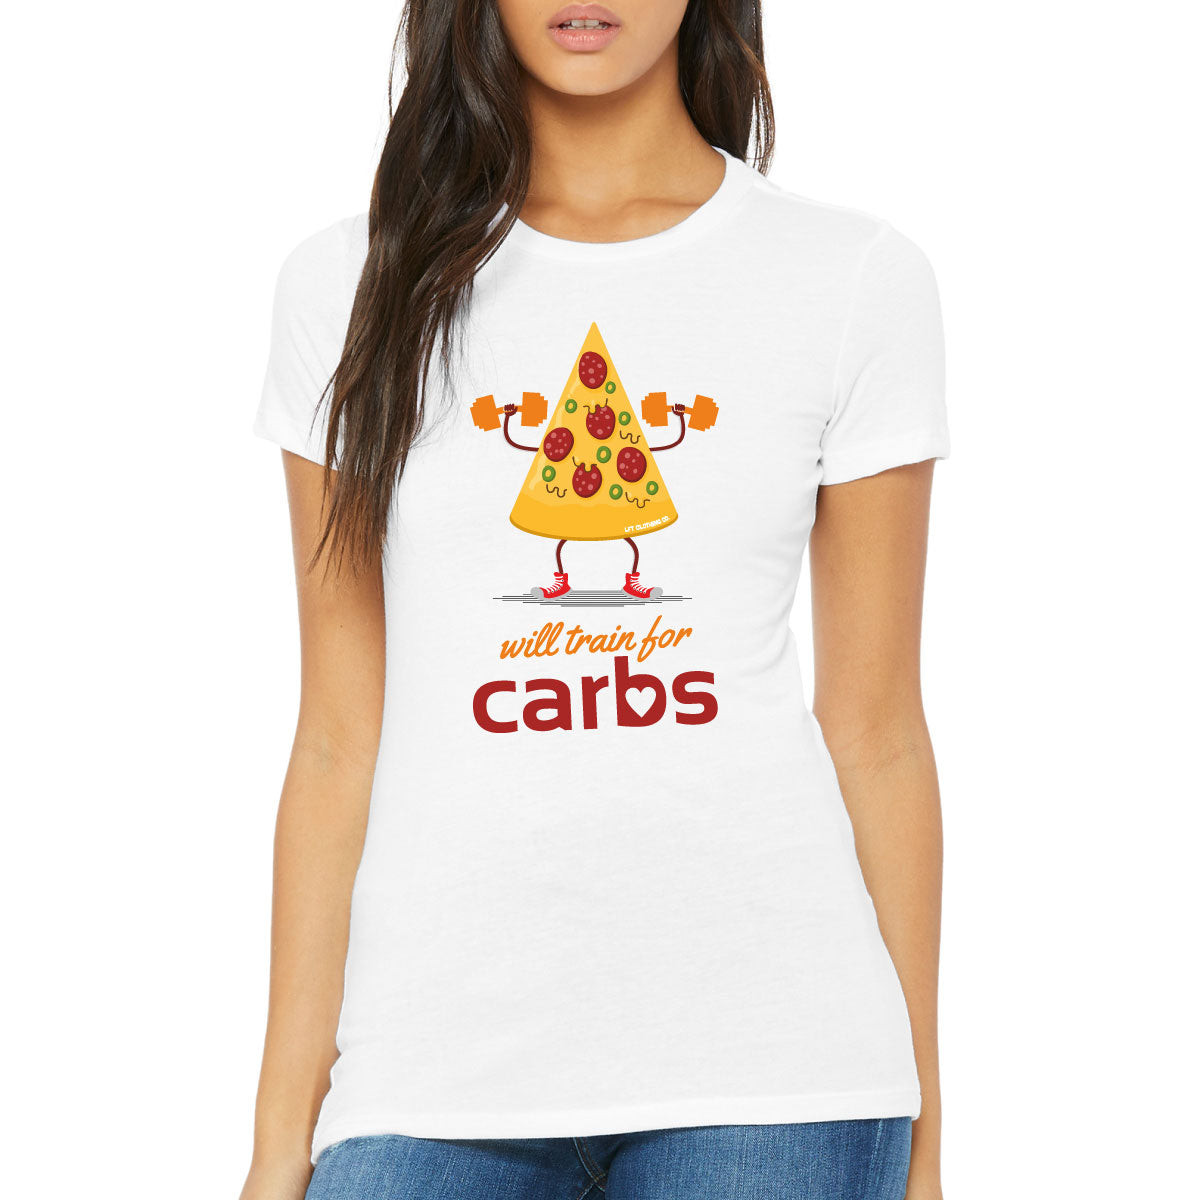 Will Train for Carbs Slim Fit Tee